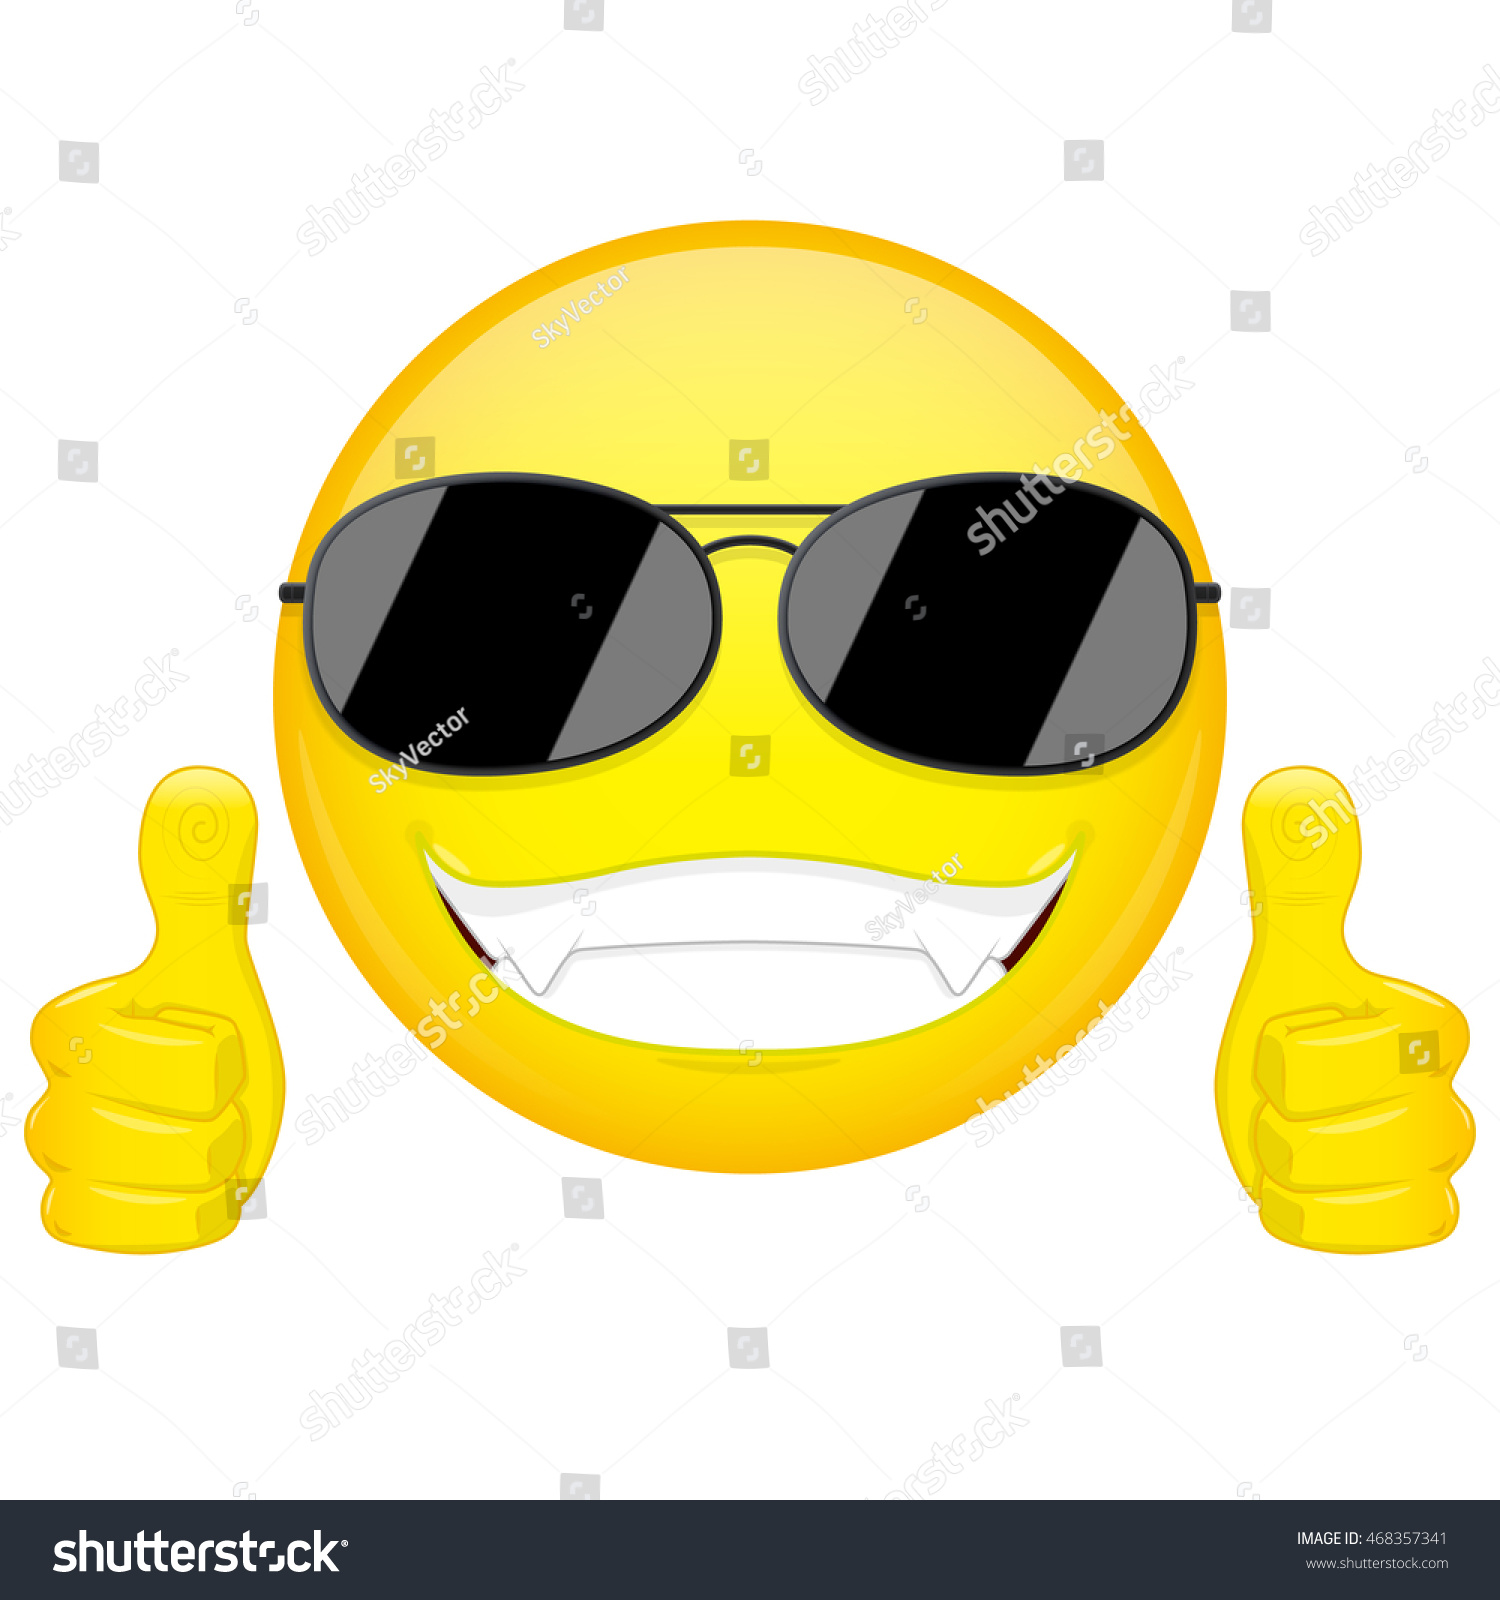 Good idea emoji thumbs emotion cool stock vector 468357341 good idea emoji thumbs up emotion cool guy with sunglasses emoticon vector illustration biocorpaavc Images